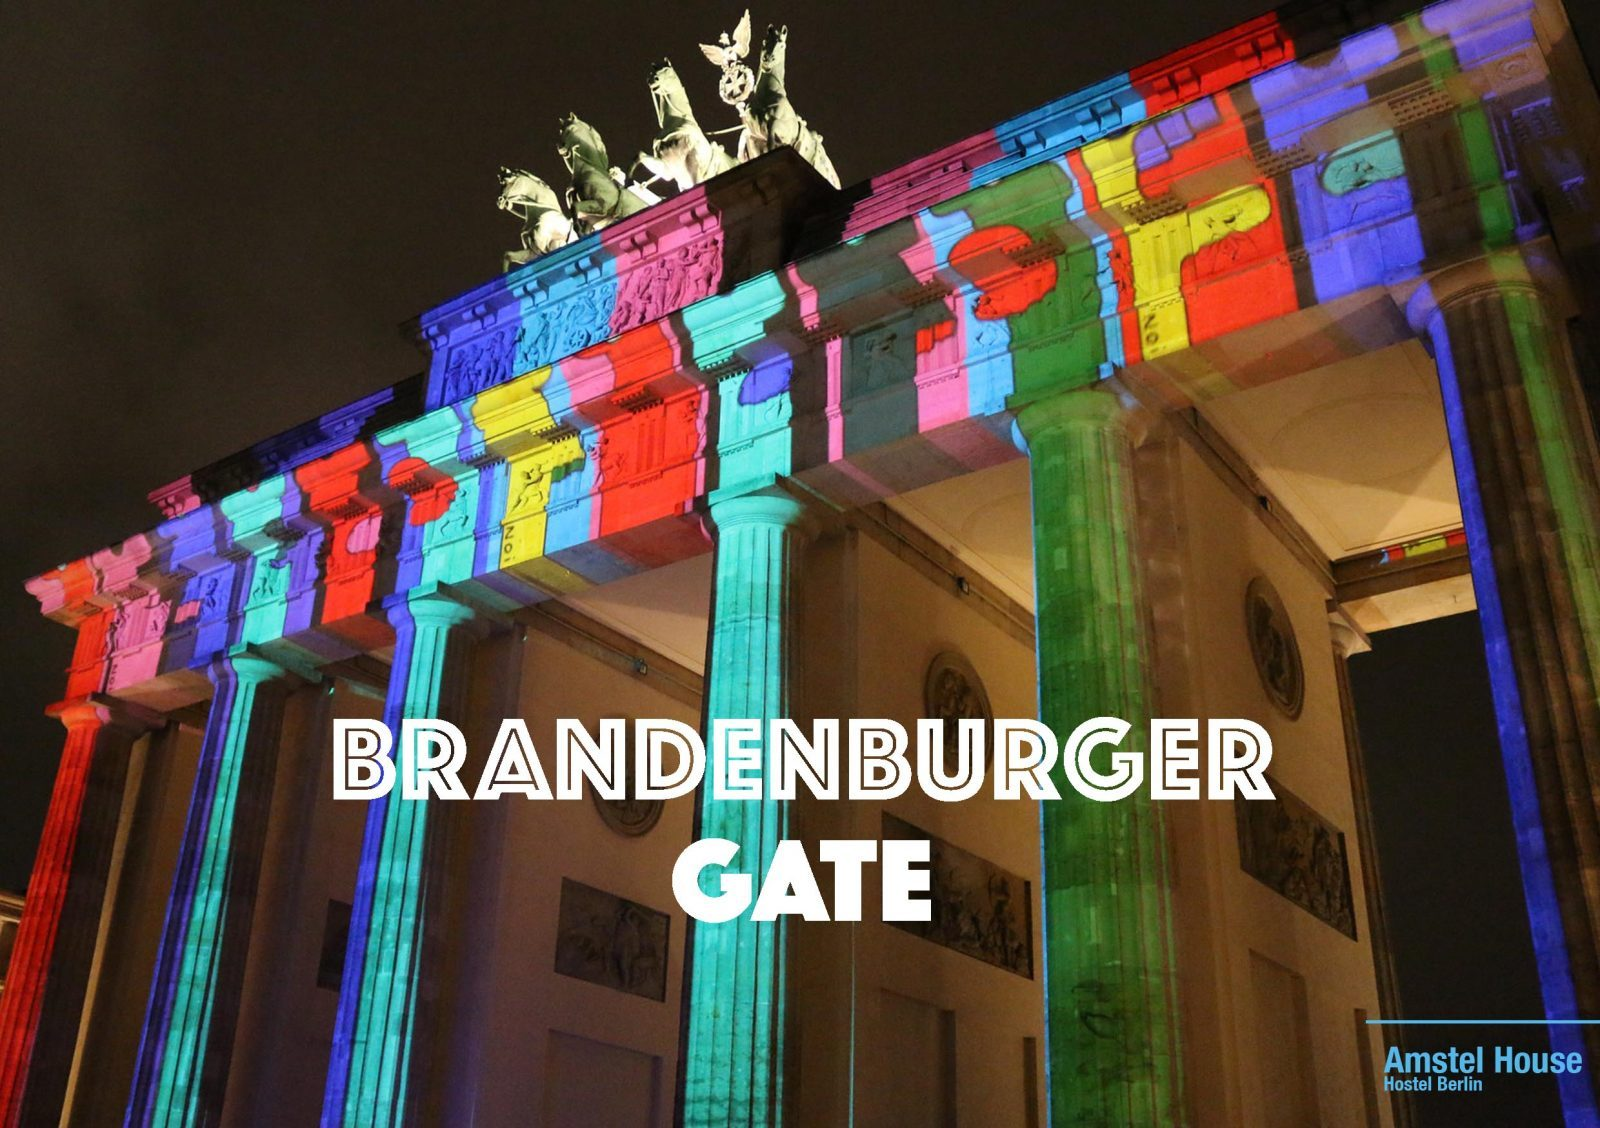 Brandenburger Gate Berlin - 10 facts